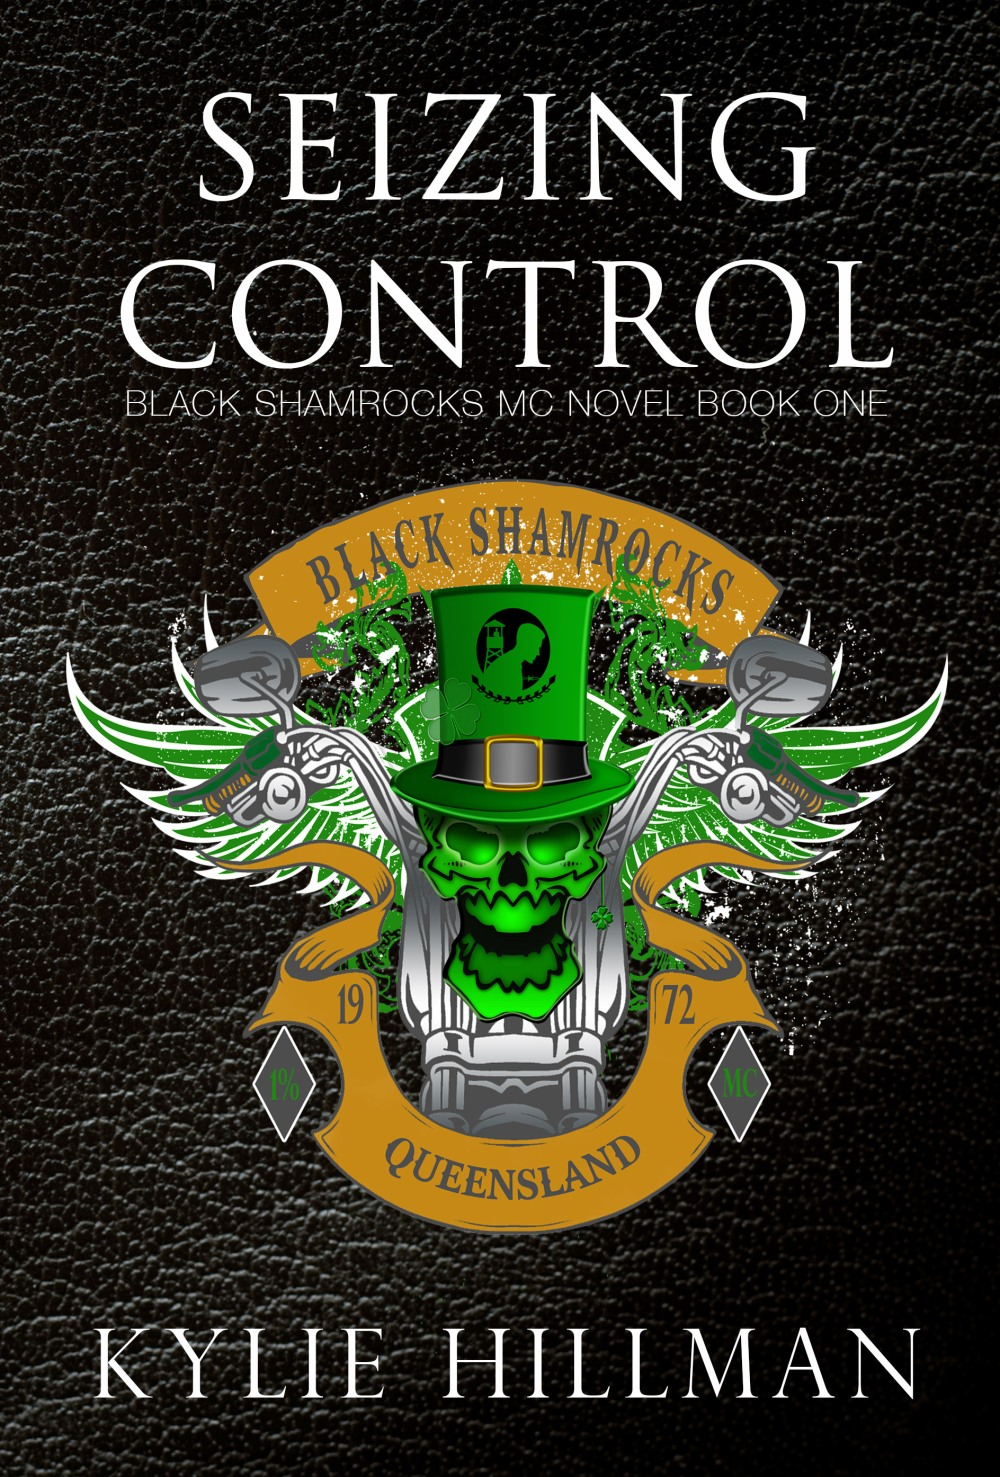 Seizing Control - Final EBook Cover